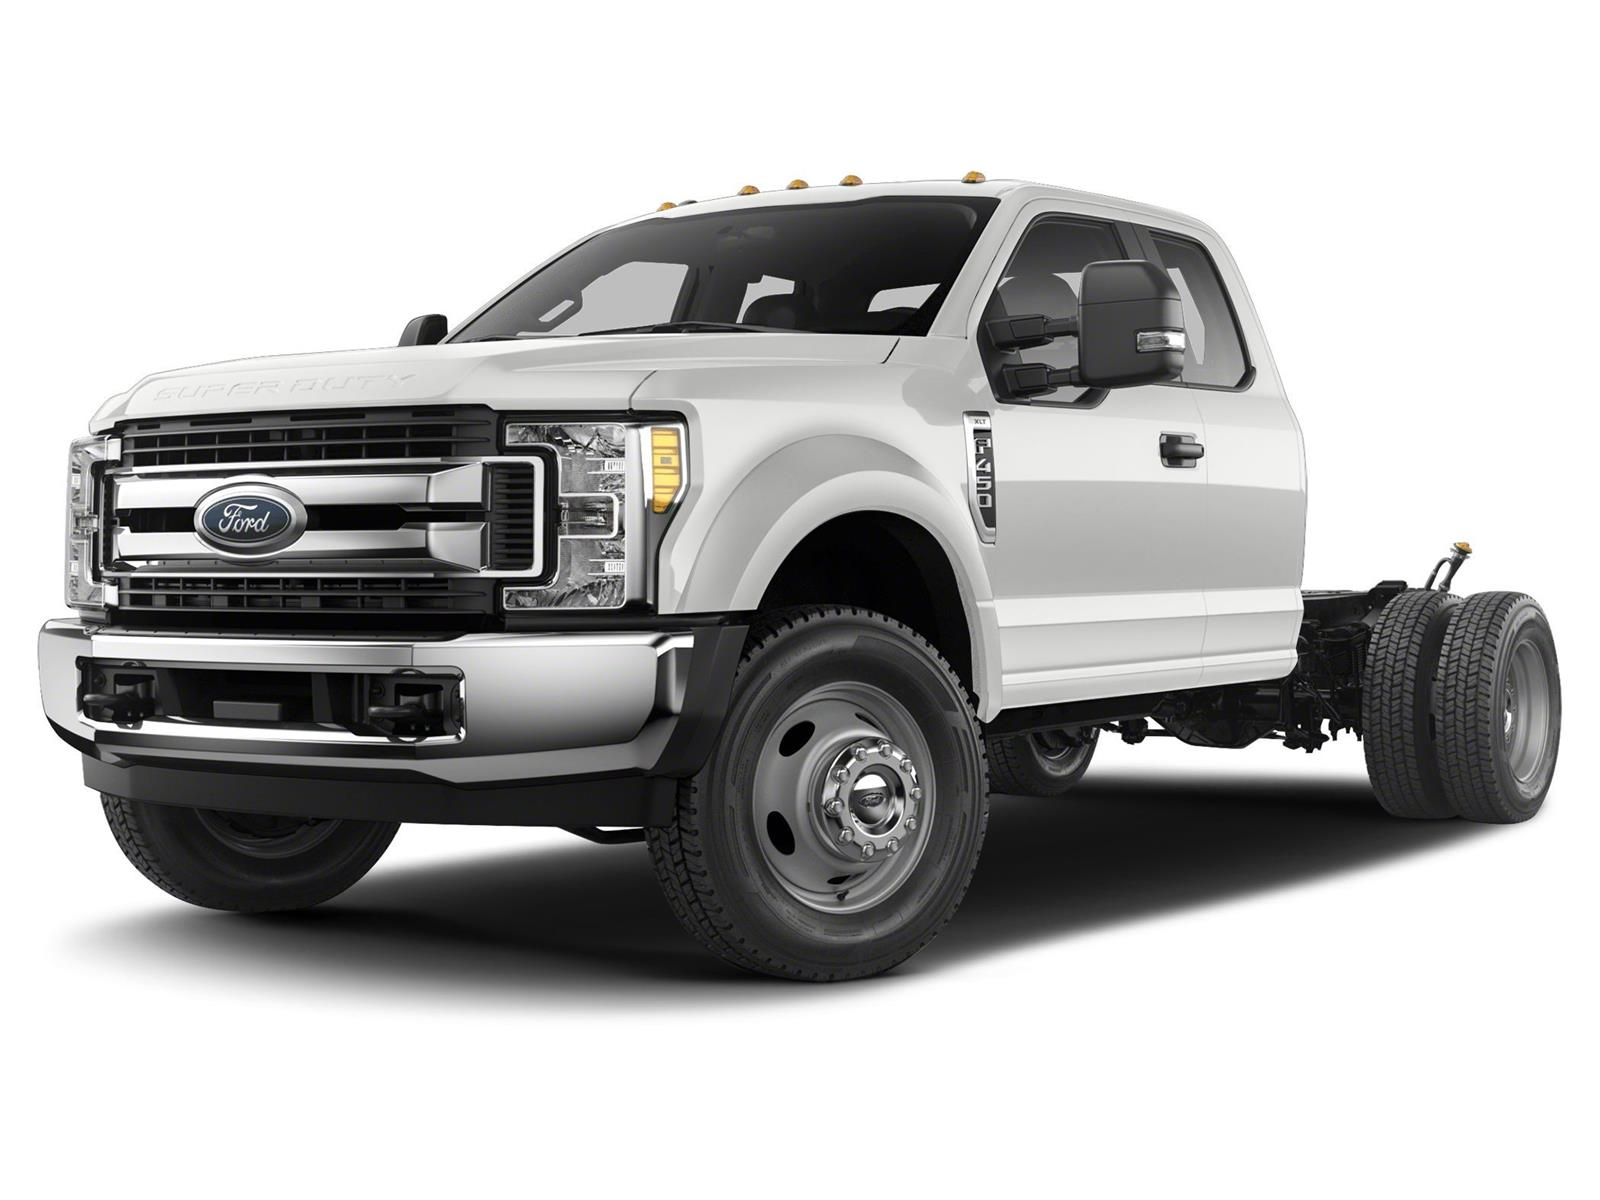 2019 F-550 Super Cab DRW 4x4, Cab Chassis #69421 - photo 1